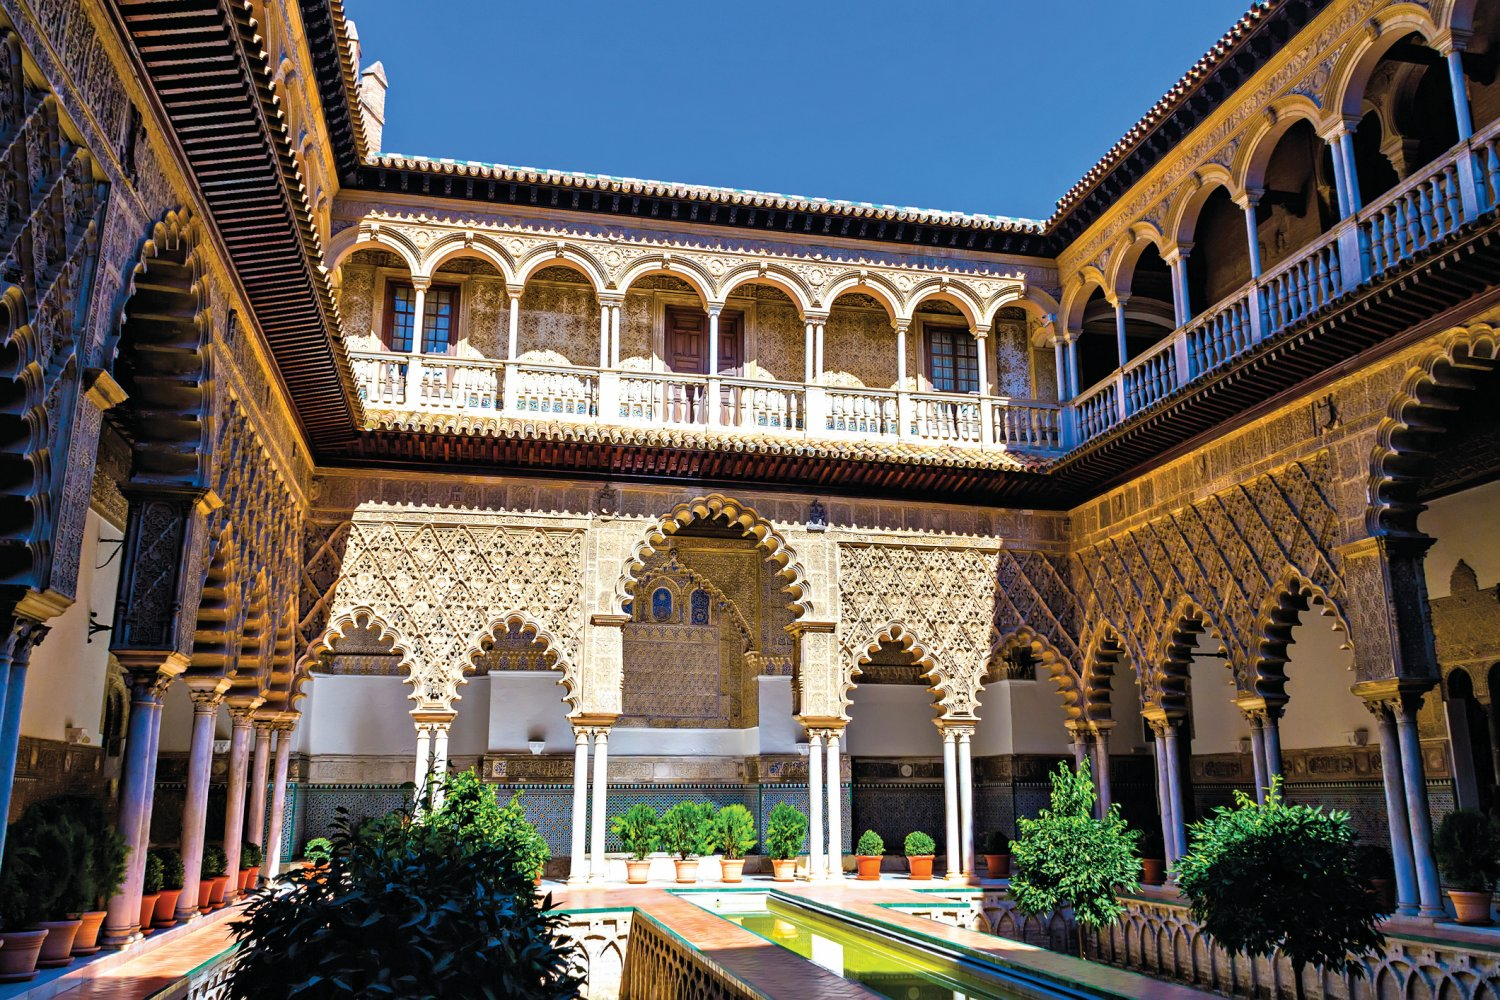 Real Alcazar, Seville, Historical sites in Spain